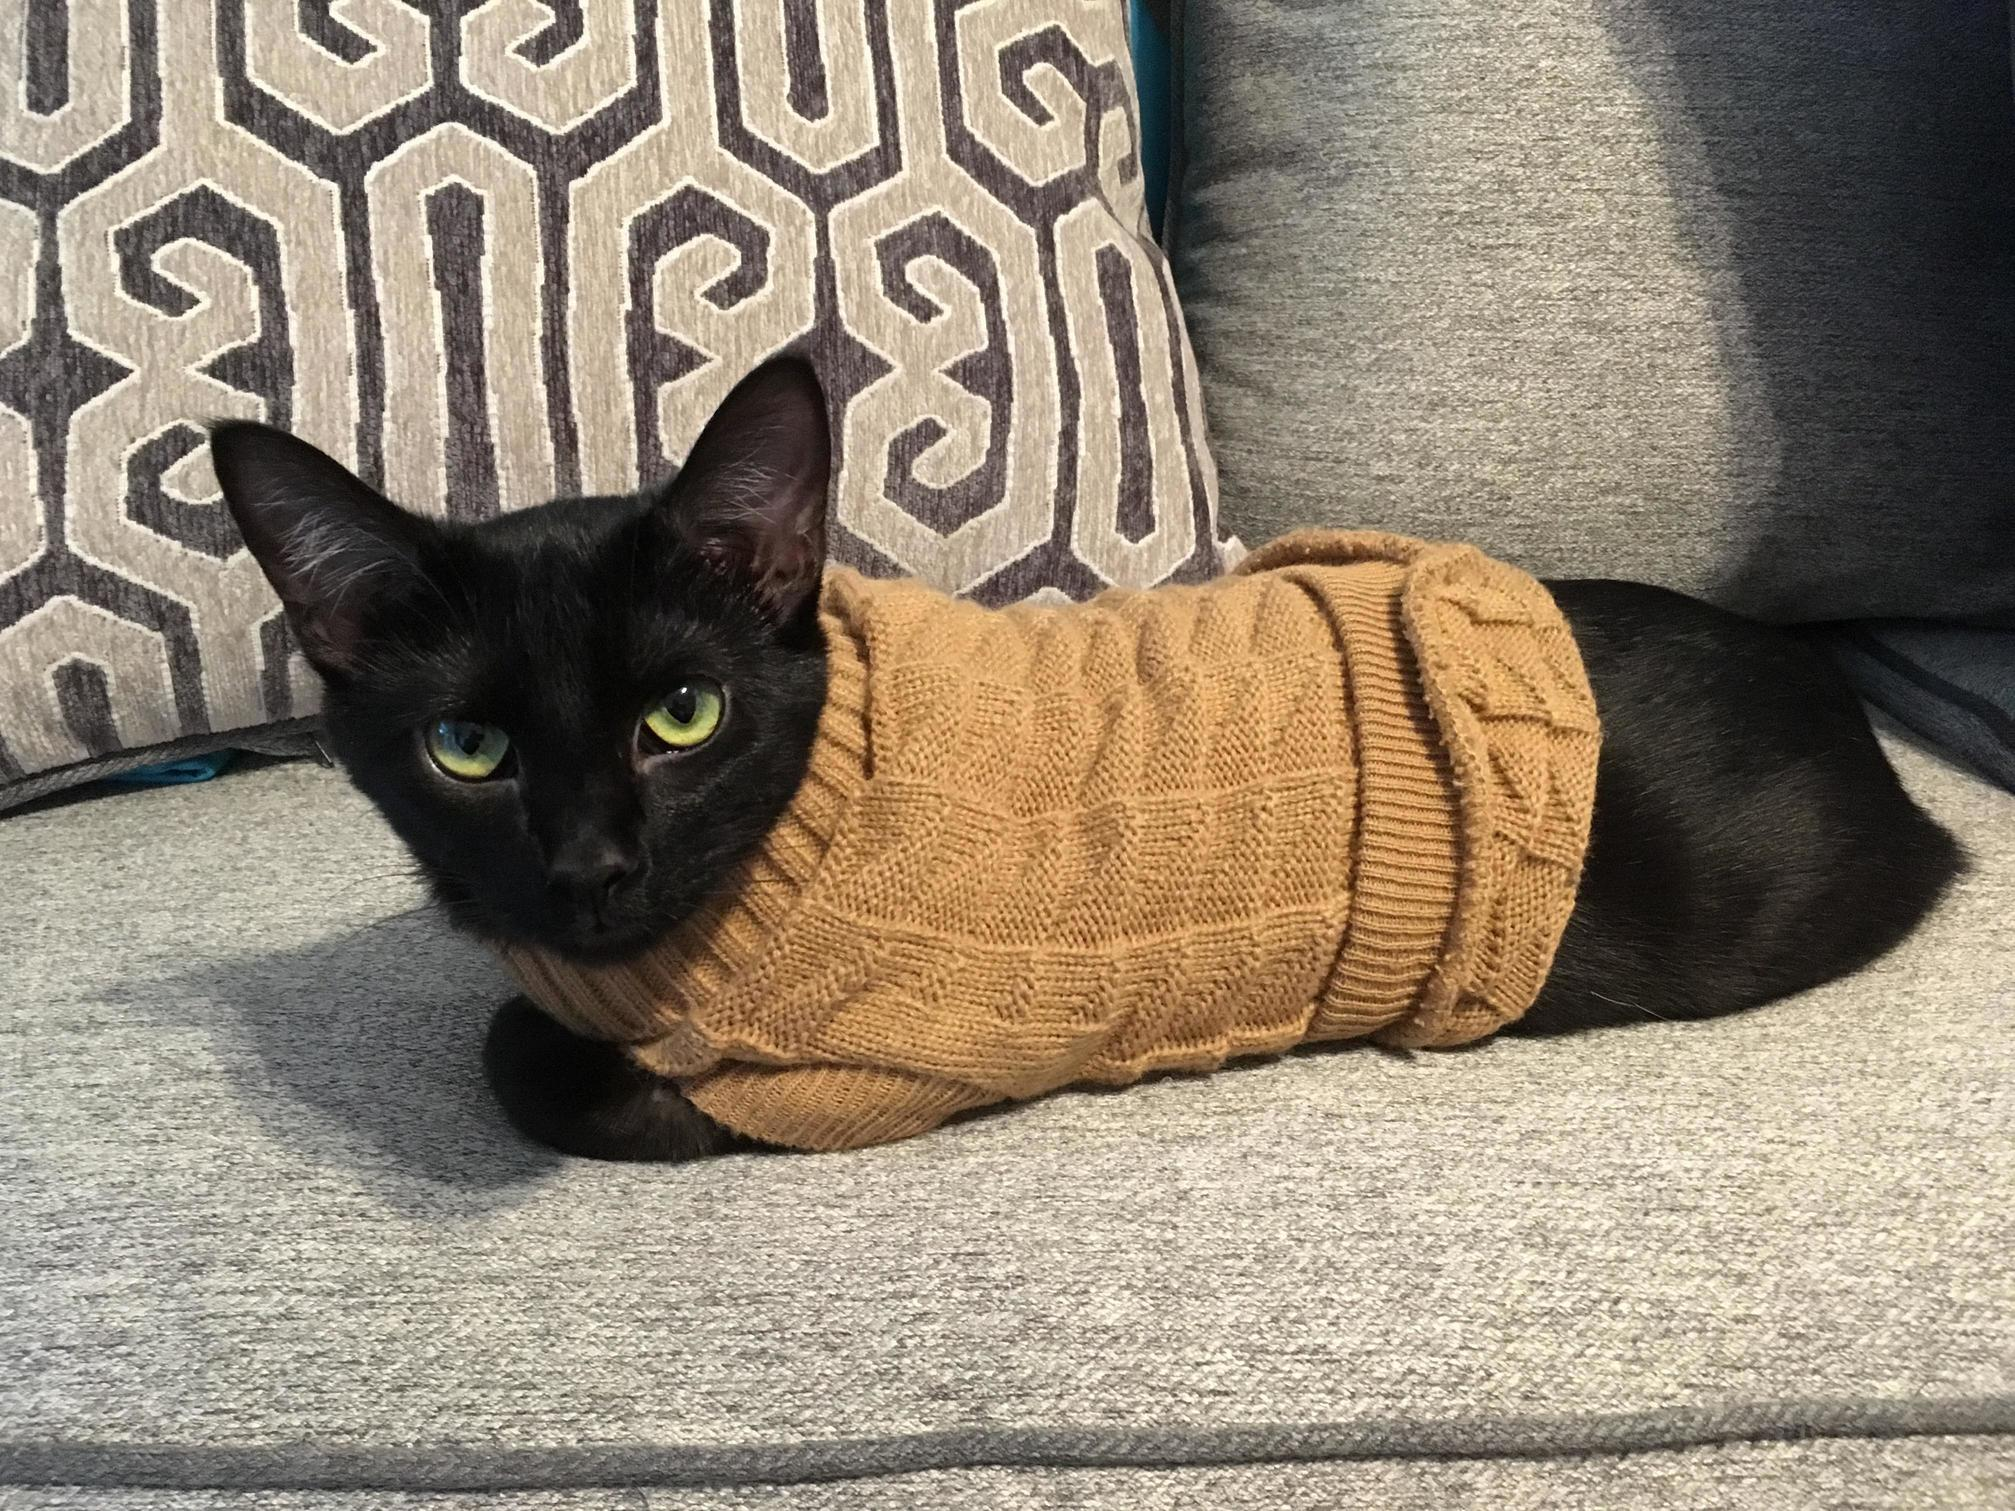 Lady arwen modeling her new sweater